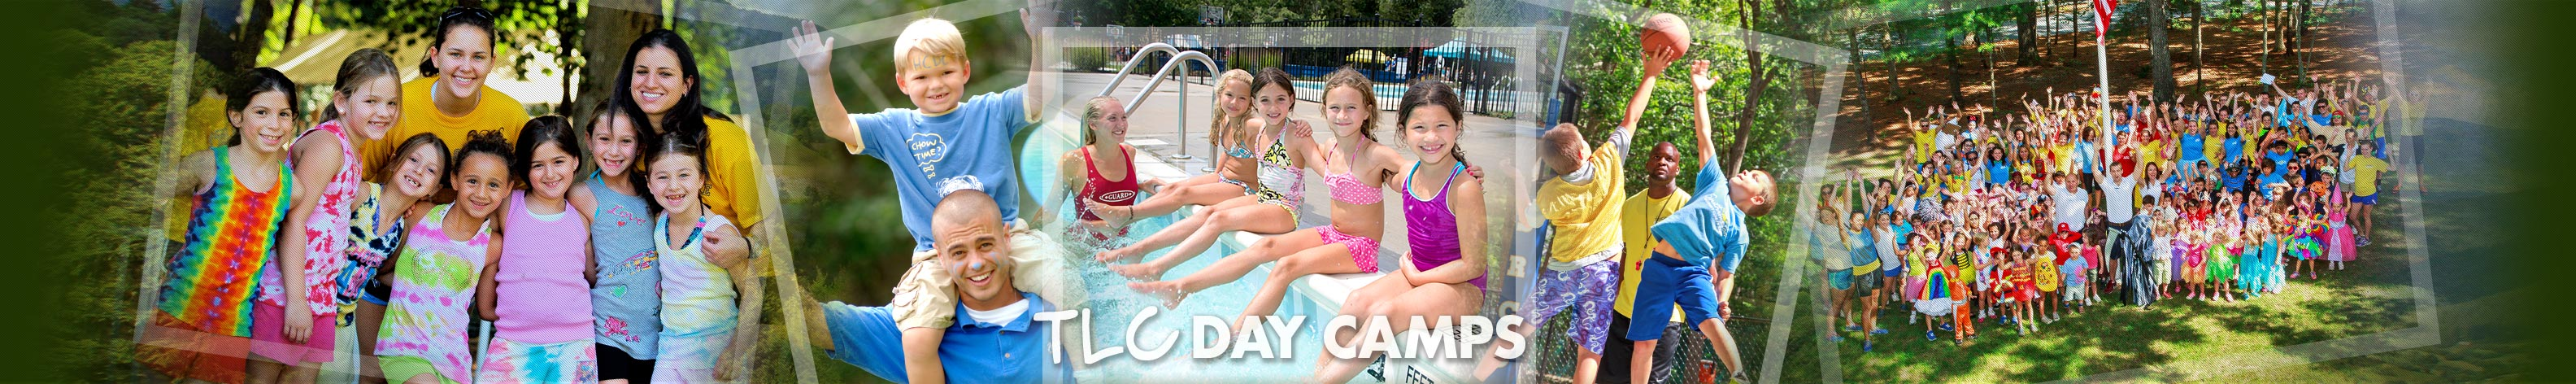 Jobs at summer day camps